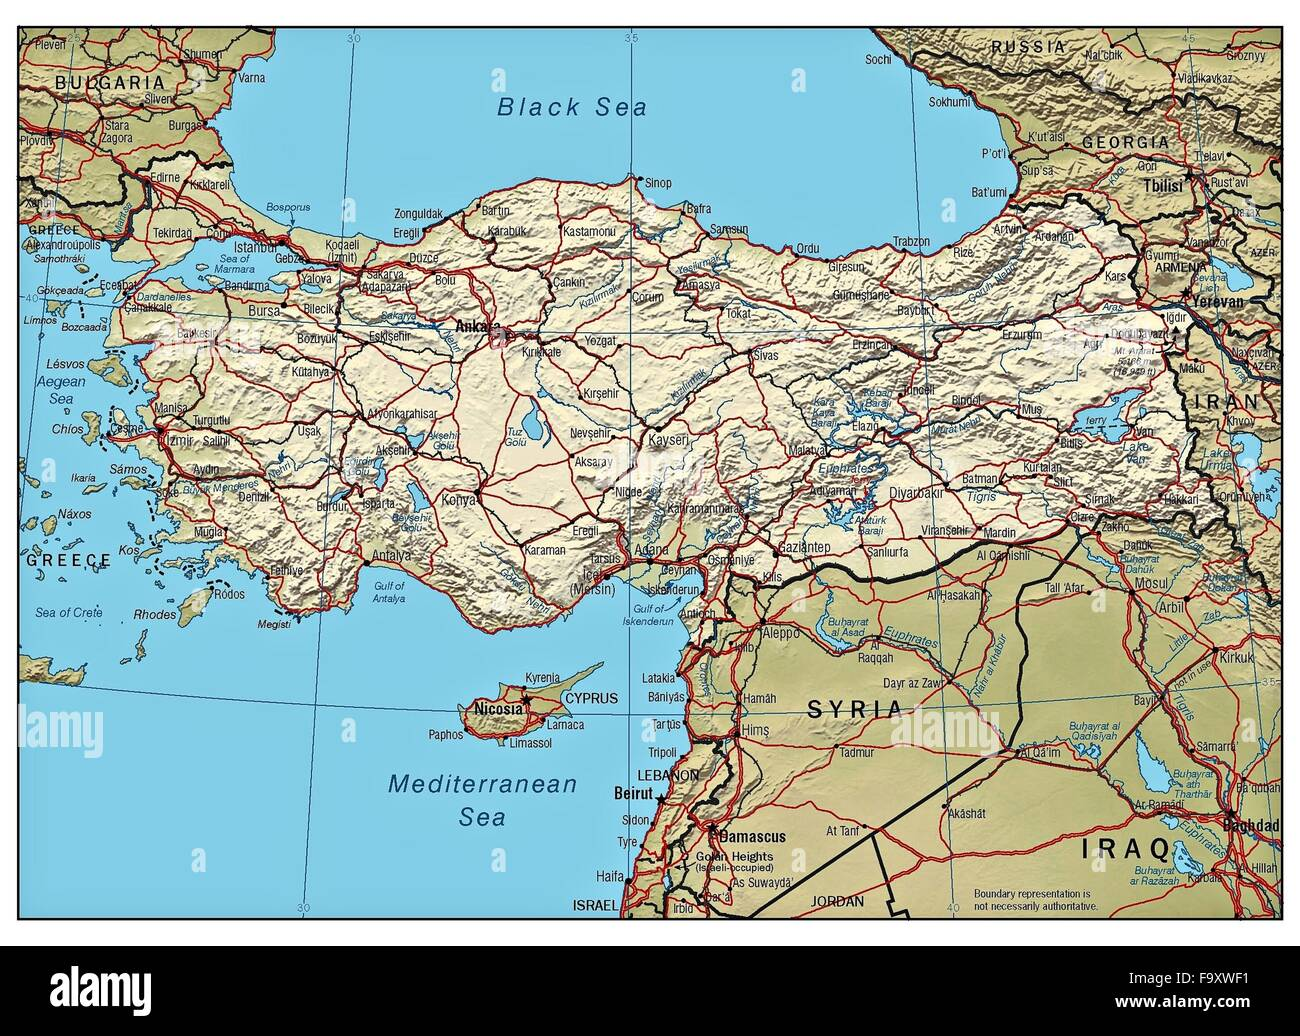 Turkey Country Map Stock Photos & Turkey Country Map Stock Images ...